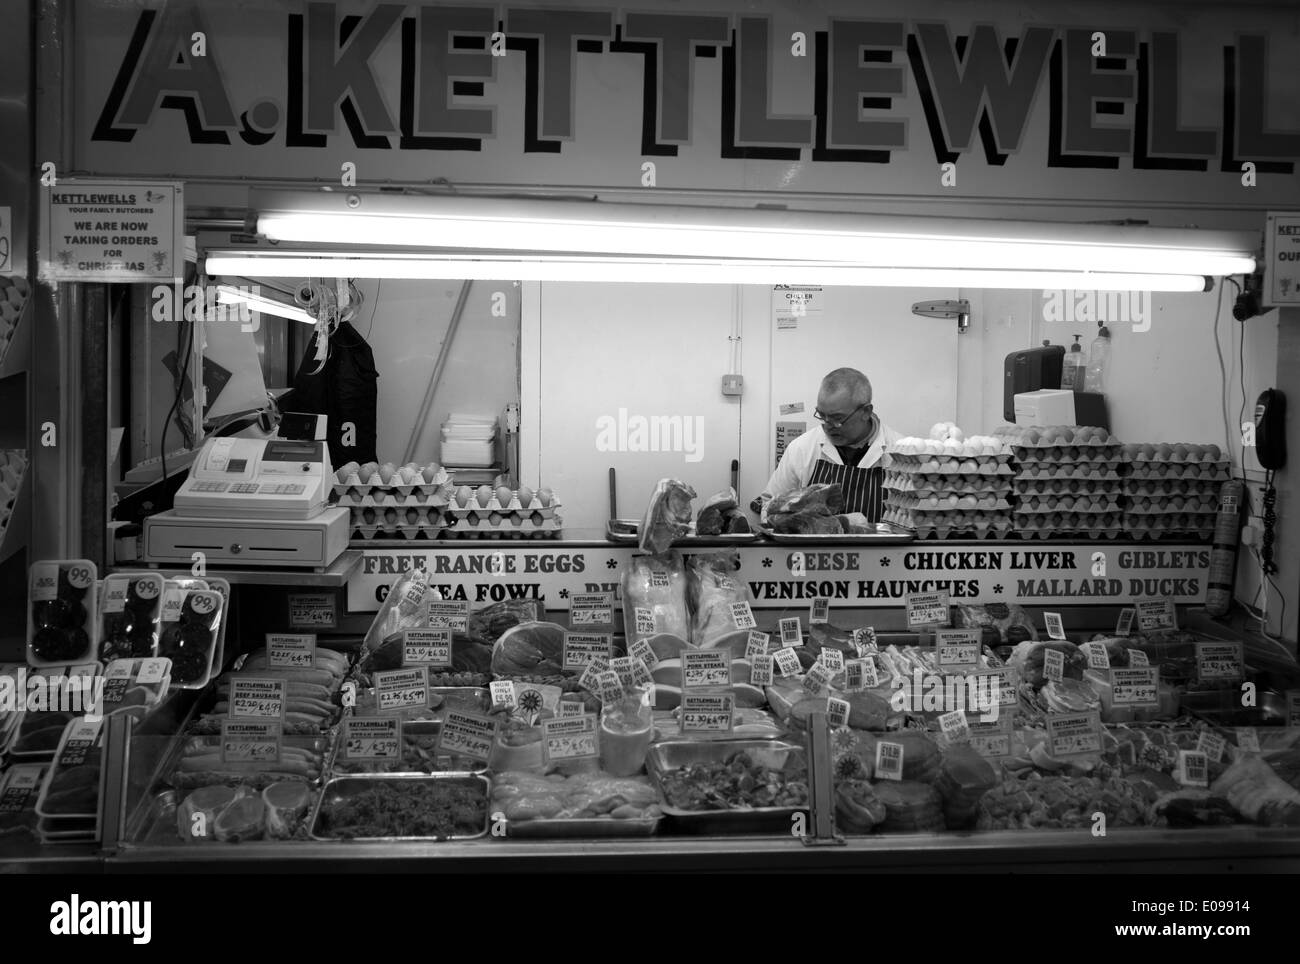 Butchers shop  in the Grainger market, Newcastle-upon-Tyne, Tyne and Wear - Stock Image